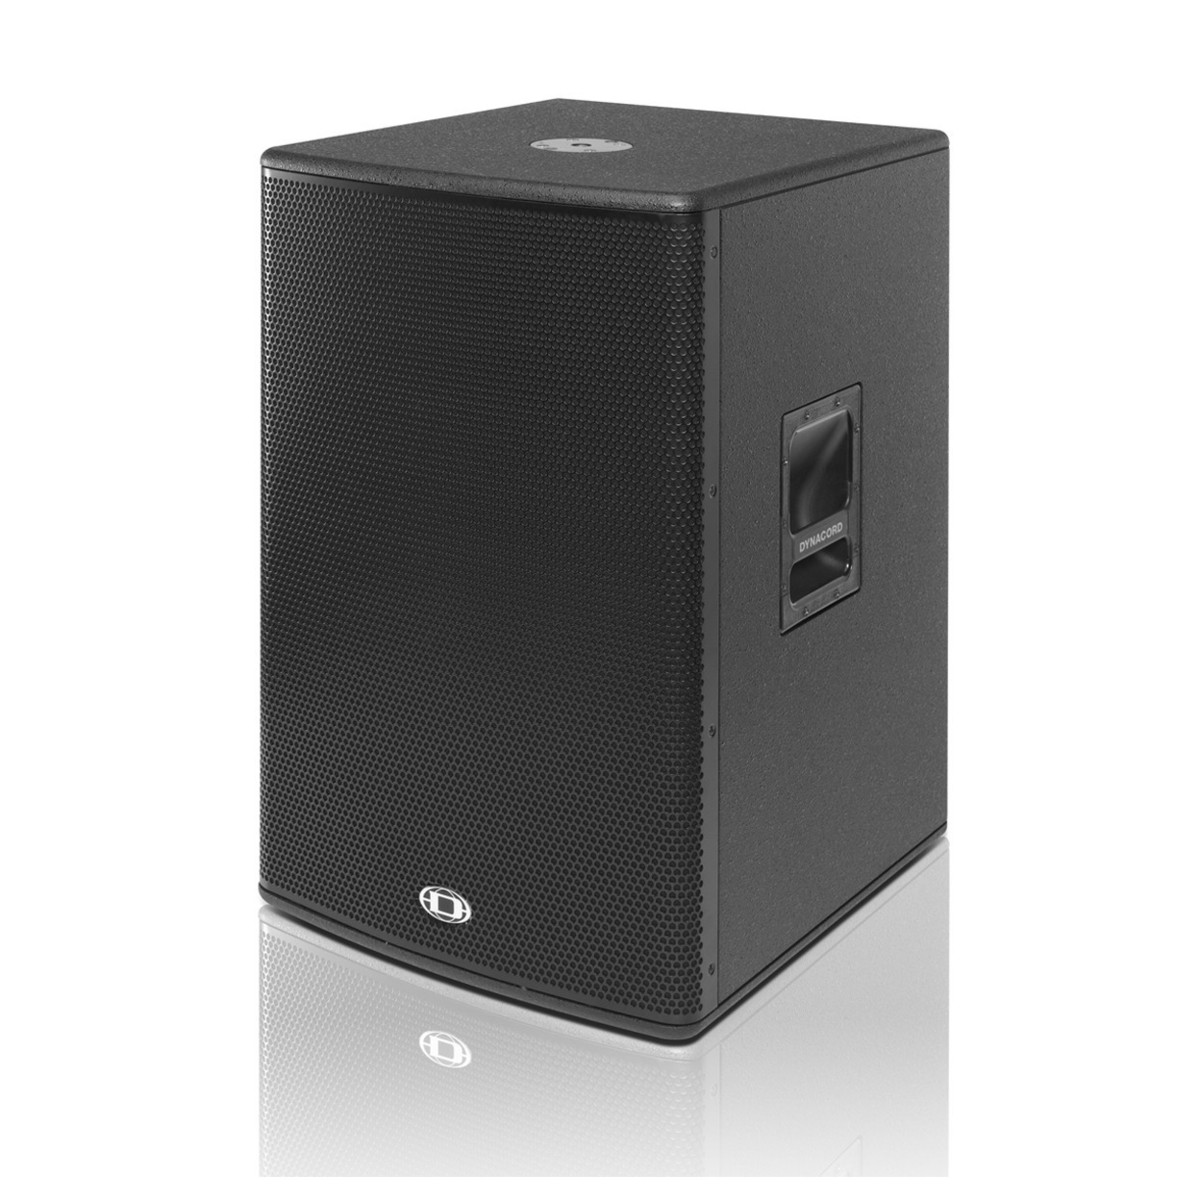 disc dynacord sub passive pa subwoofer gear4music. Black Bedroom Furniture Sets. Home Design Ideas